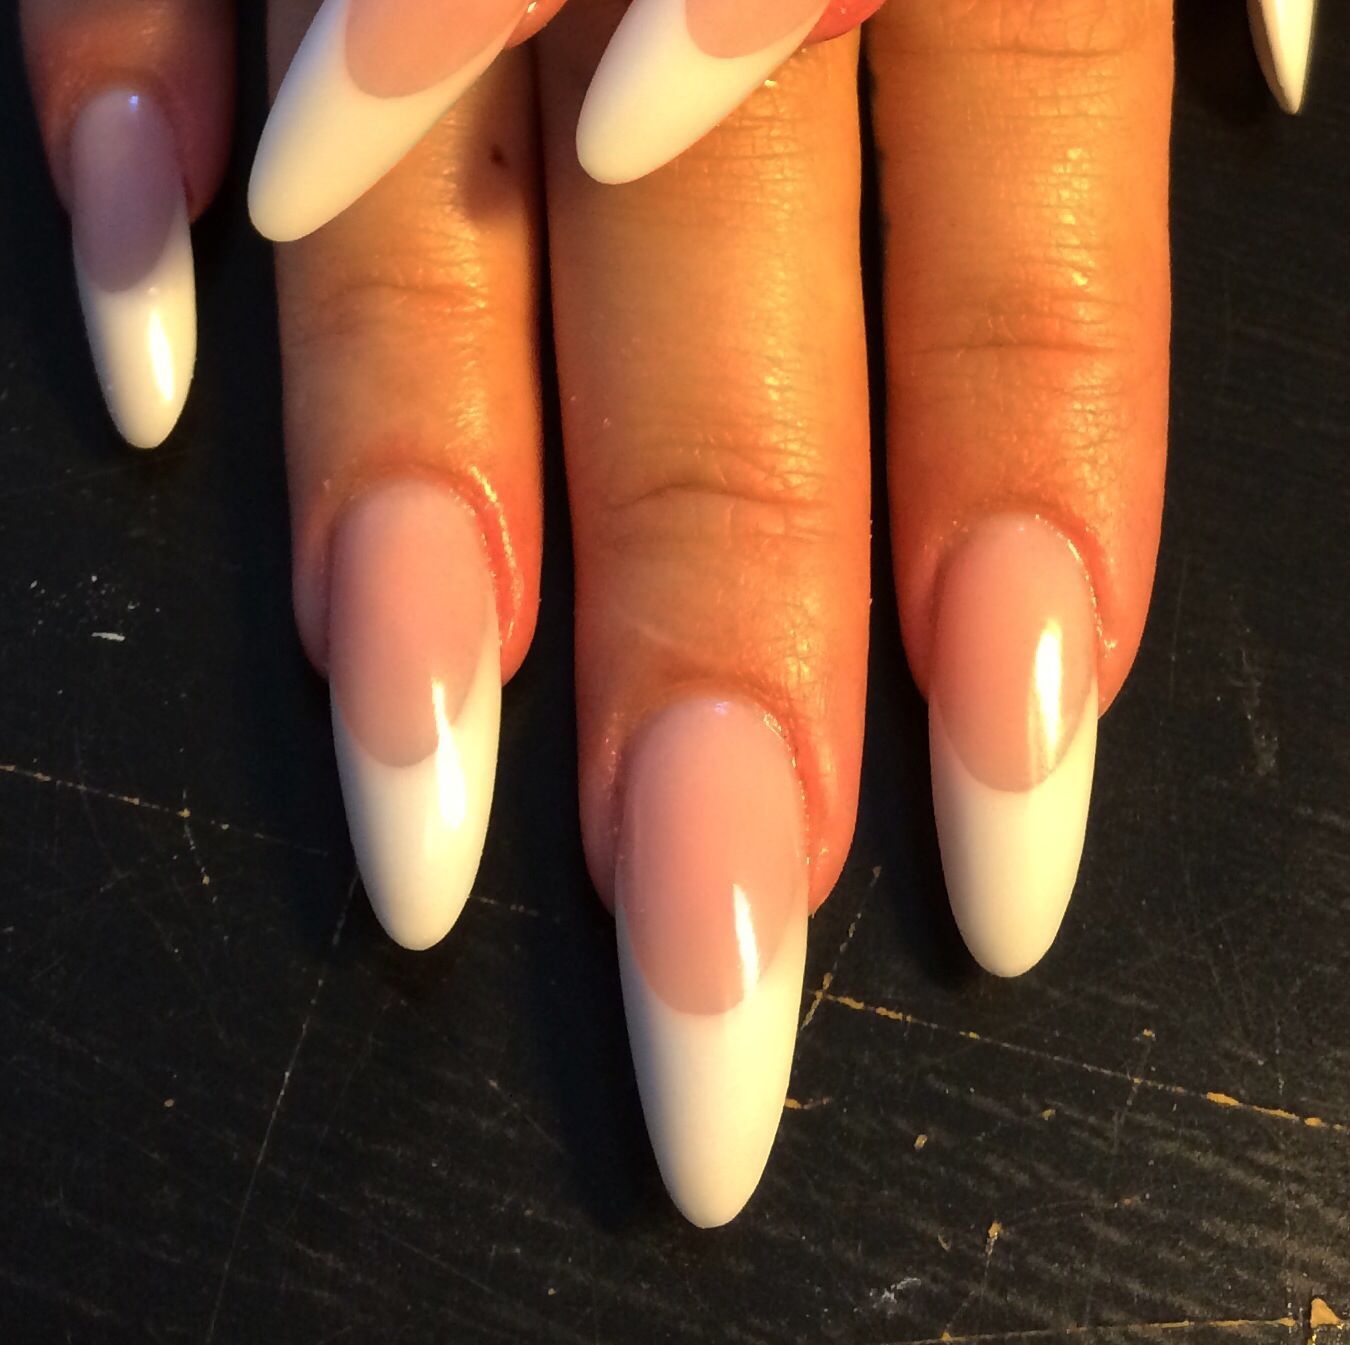 Pink and White almond-shaped l&p nails | acrylic nails ...